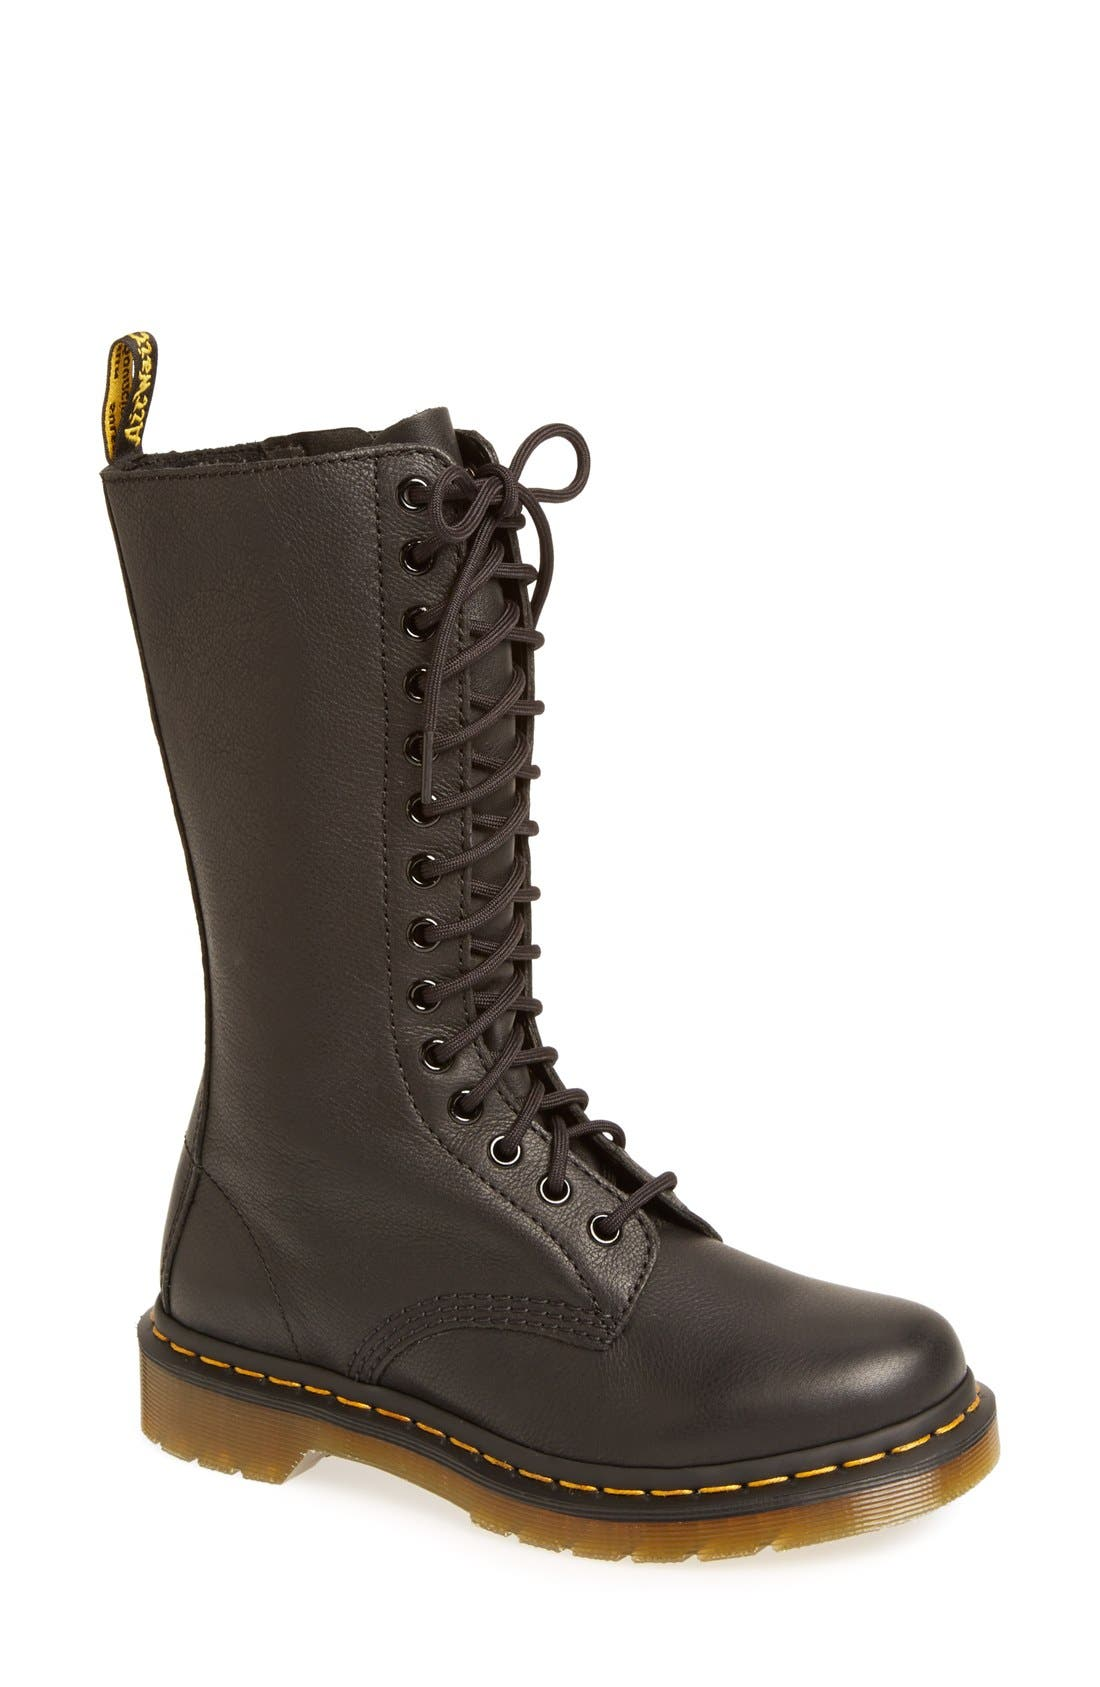 '1B99' Leather Boot,                             Main thumbnail 1, color,                             BLACK VIRGINIA